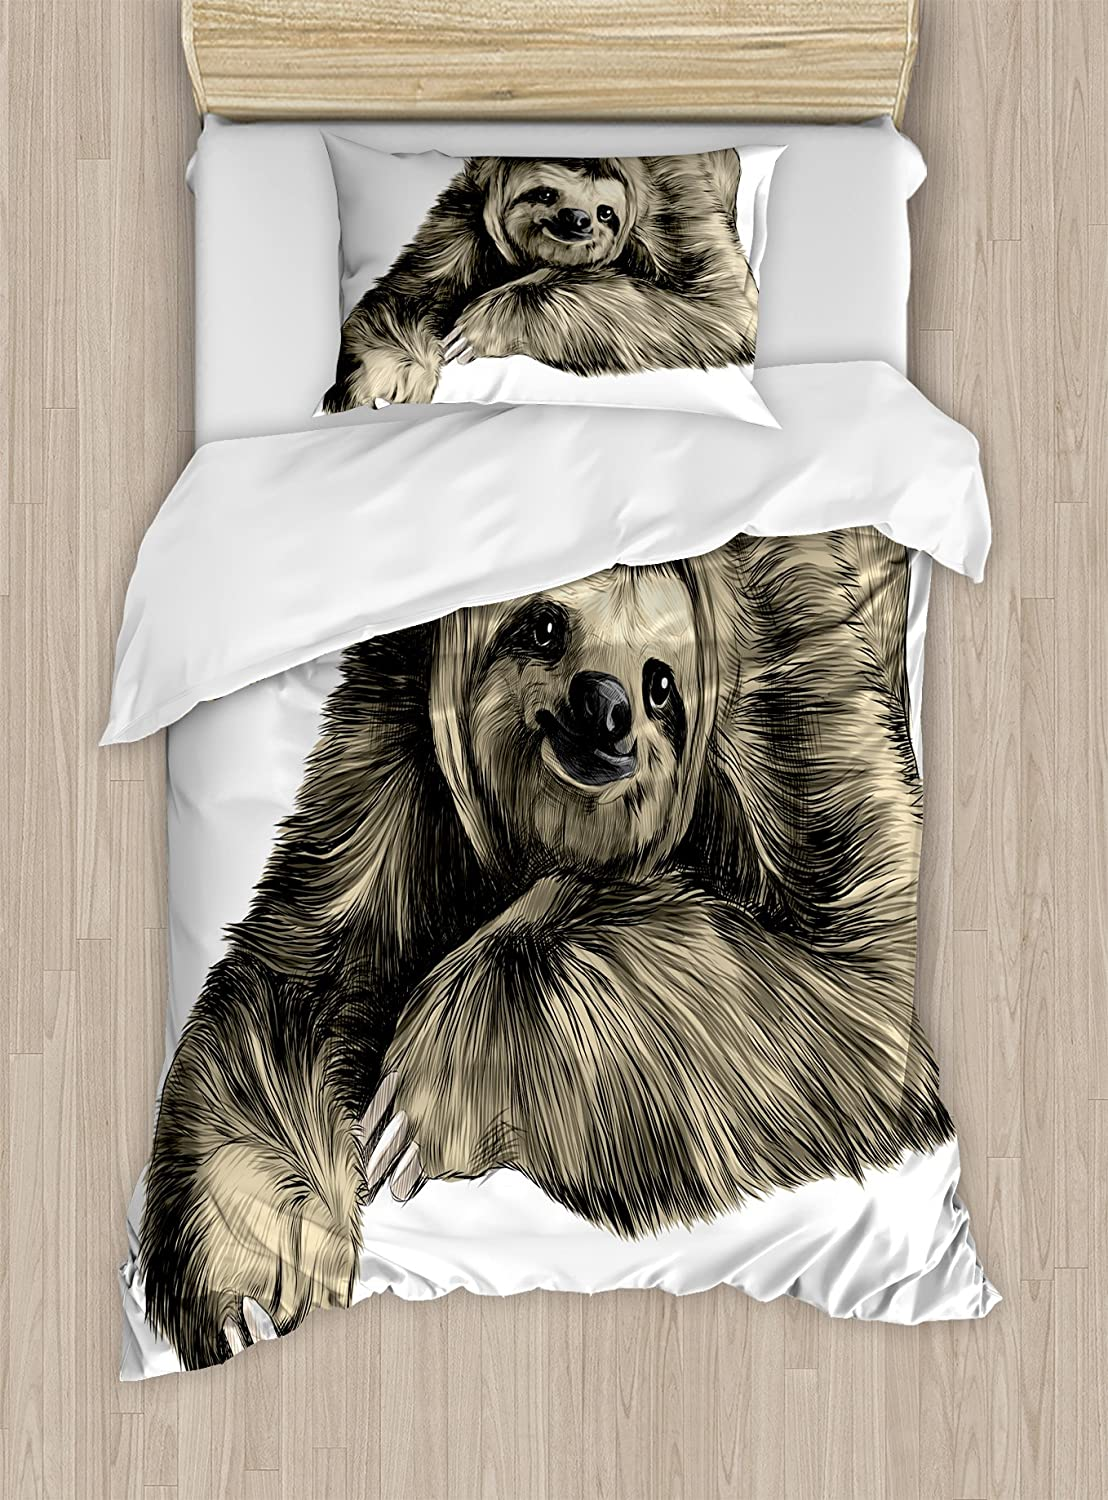 Ambesonne Sloth Duvet Cover Set, Sweetly Smiling Jungle Animals Lying Down with Crossed Legs Tropic Fauna Sketch, Decorative 2 Piece Bedding Set with 1 Pillow Sham, Twin Size, Black Ivory